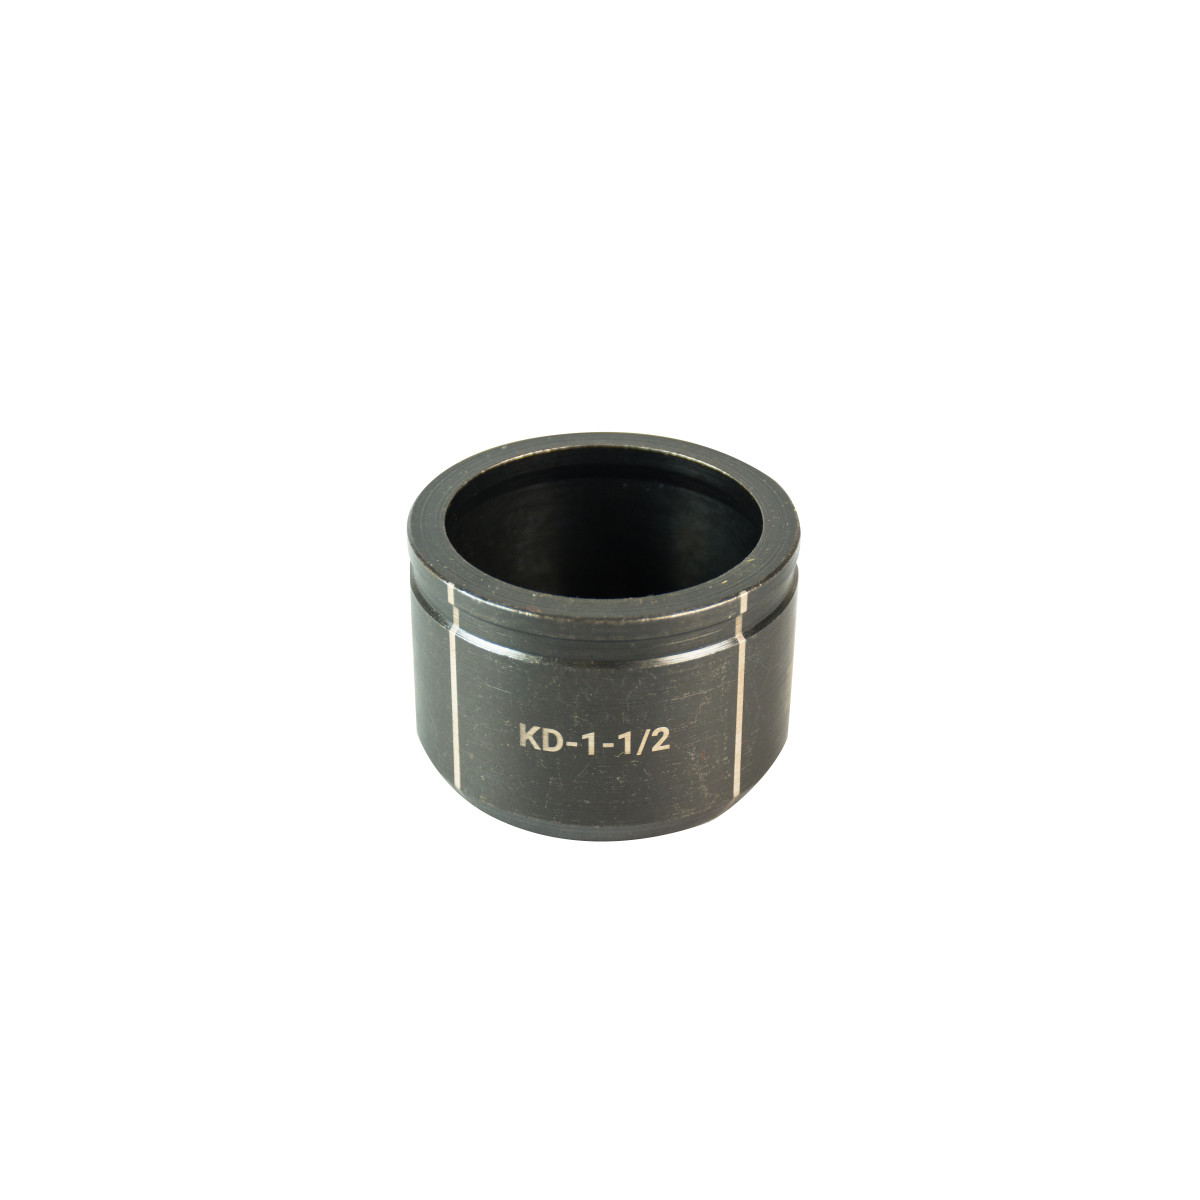 """GREENLEE 1-1/2"""" Conduit Size Knockout Die.  Optimized for widest range of materials and drivers.  Alignment markings for improved accuracy.  Laser markings for quick part identification.  Made in USA"""